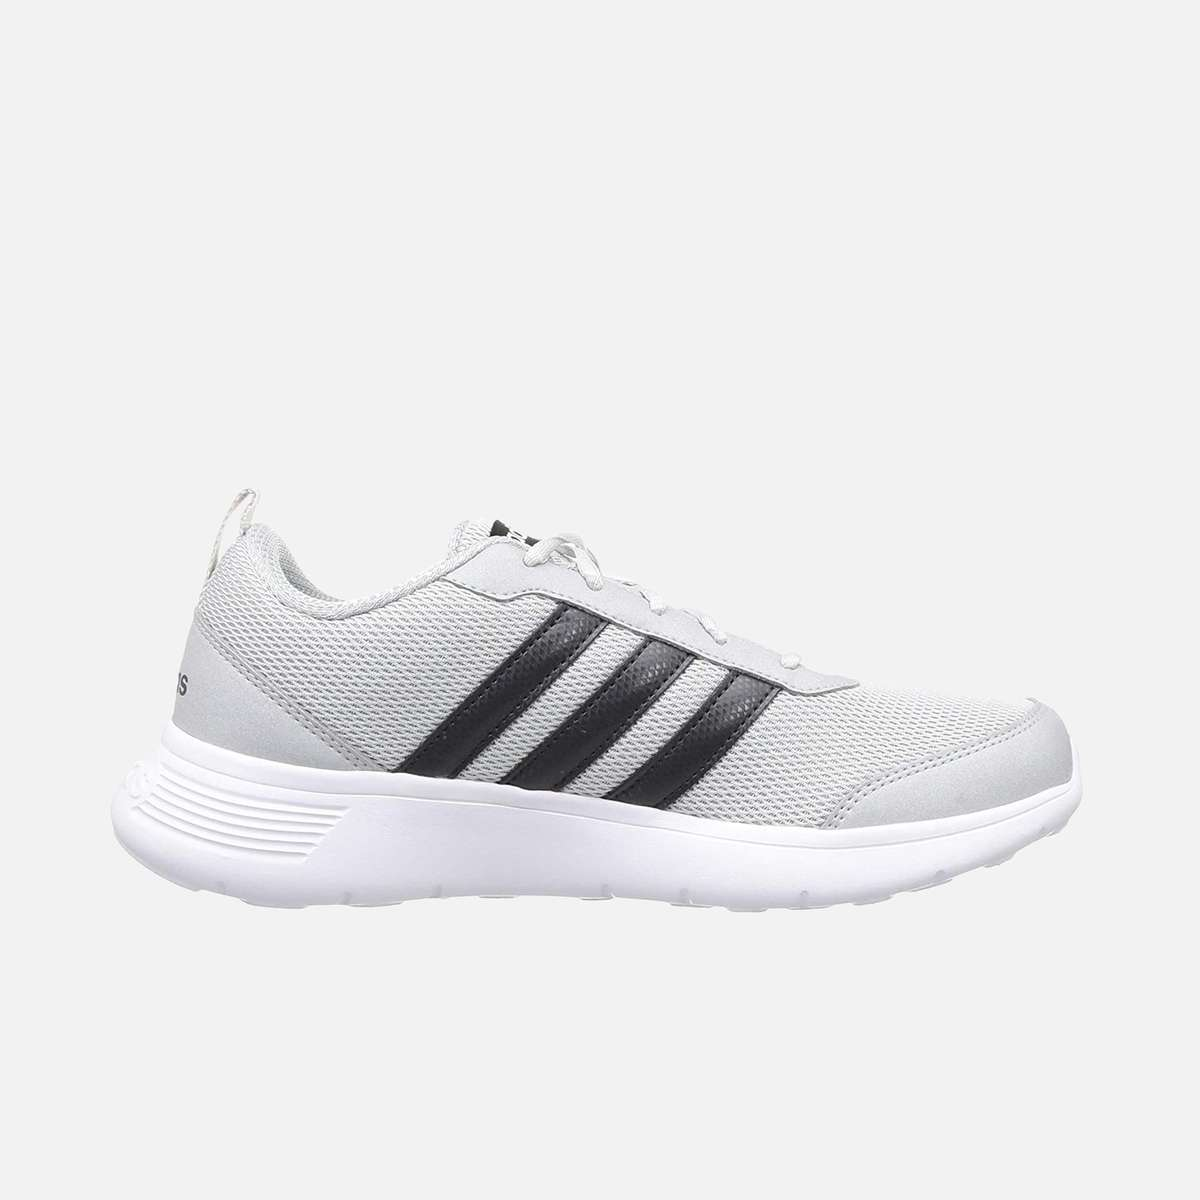 ADIDAS Textured Lace-Up Sports Shoes